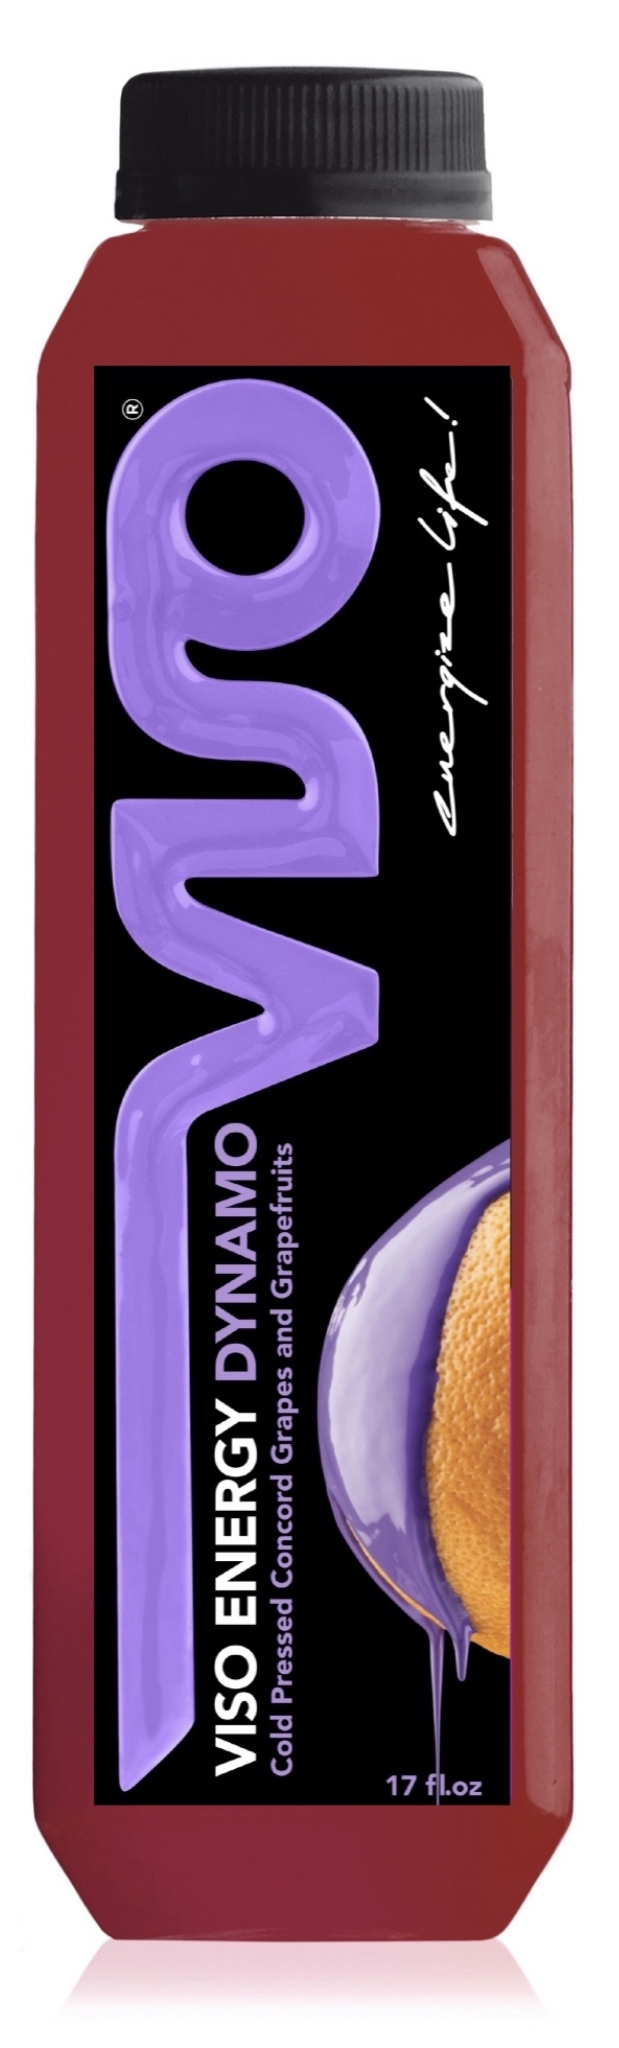 DYNAMO - Concord Grape, Grapefruit